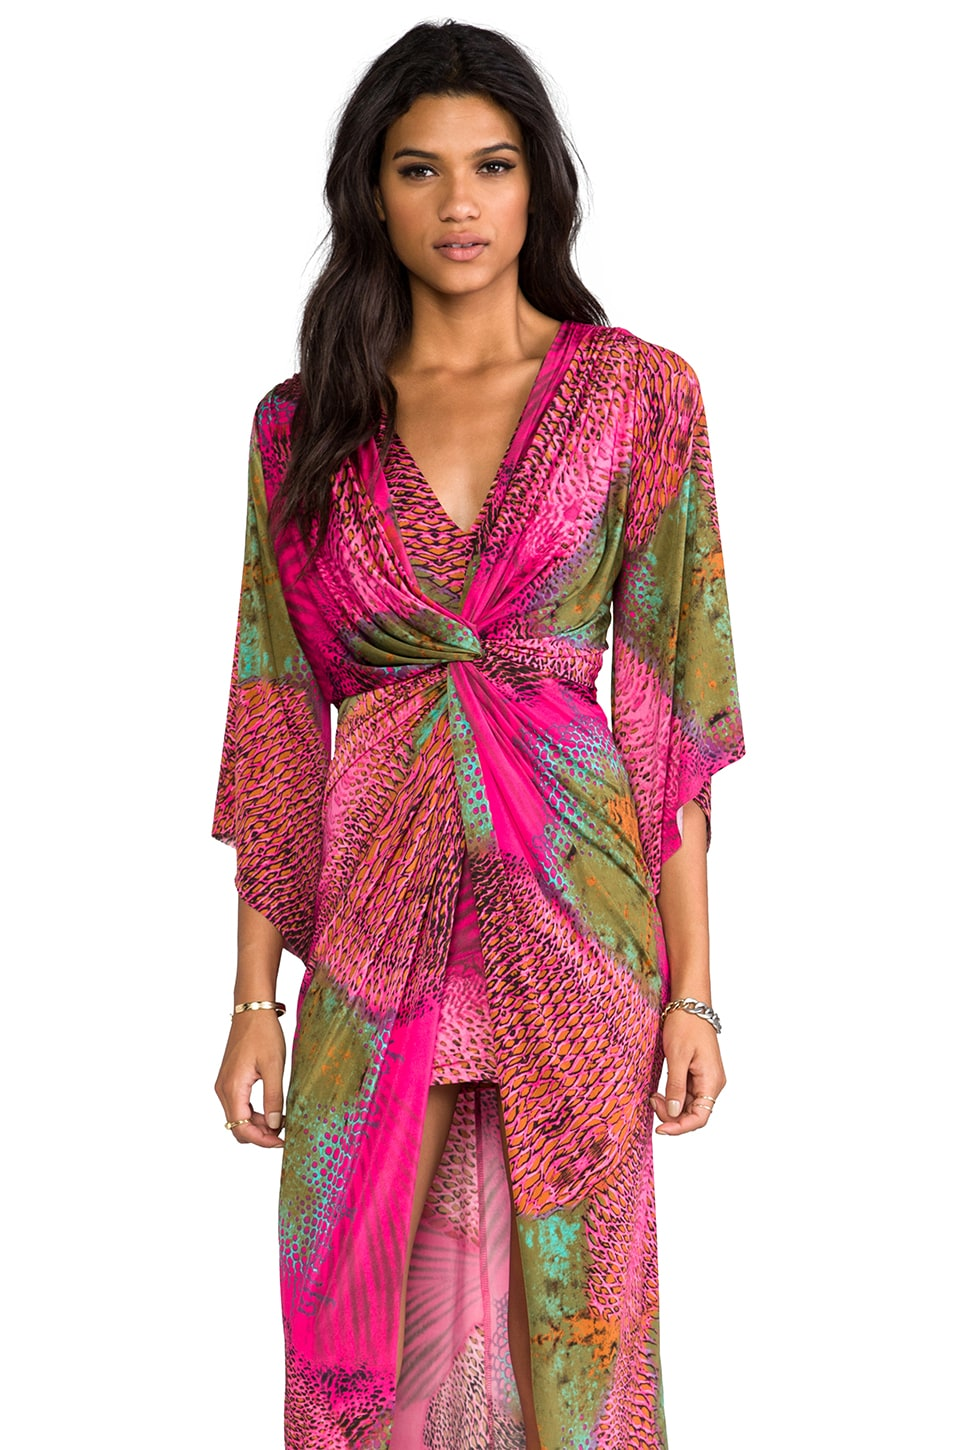 T-Bags LosAngeles Long Sleeve Knot Maxi Dress in Hot Pink Feather